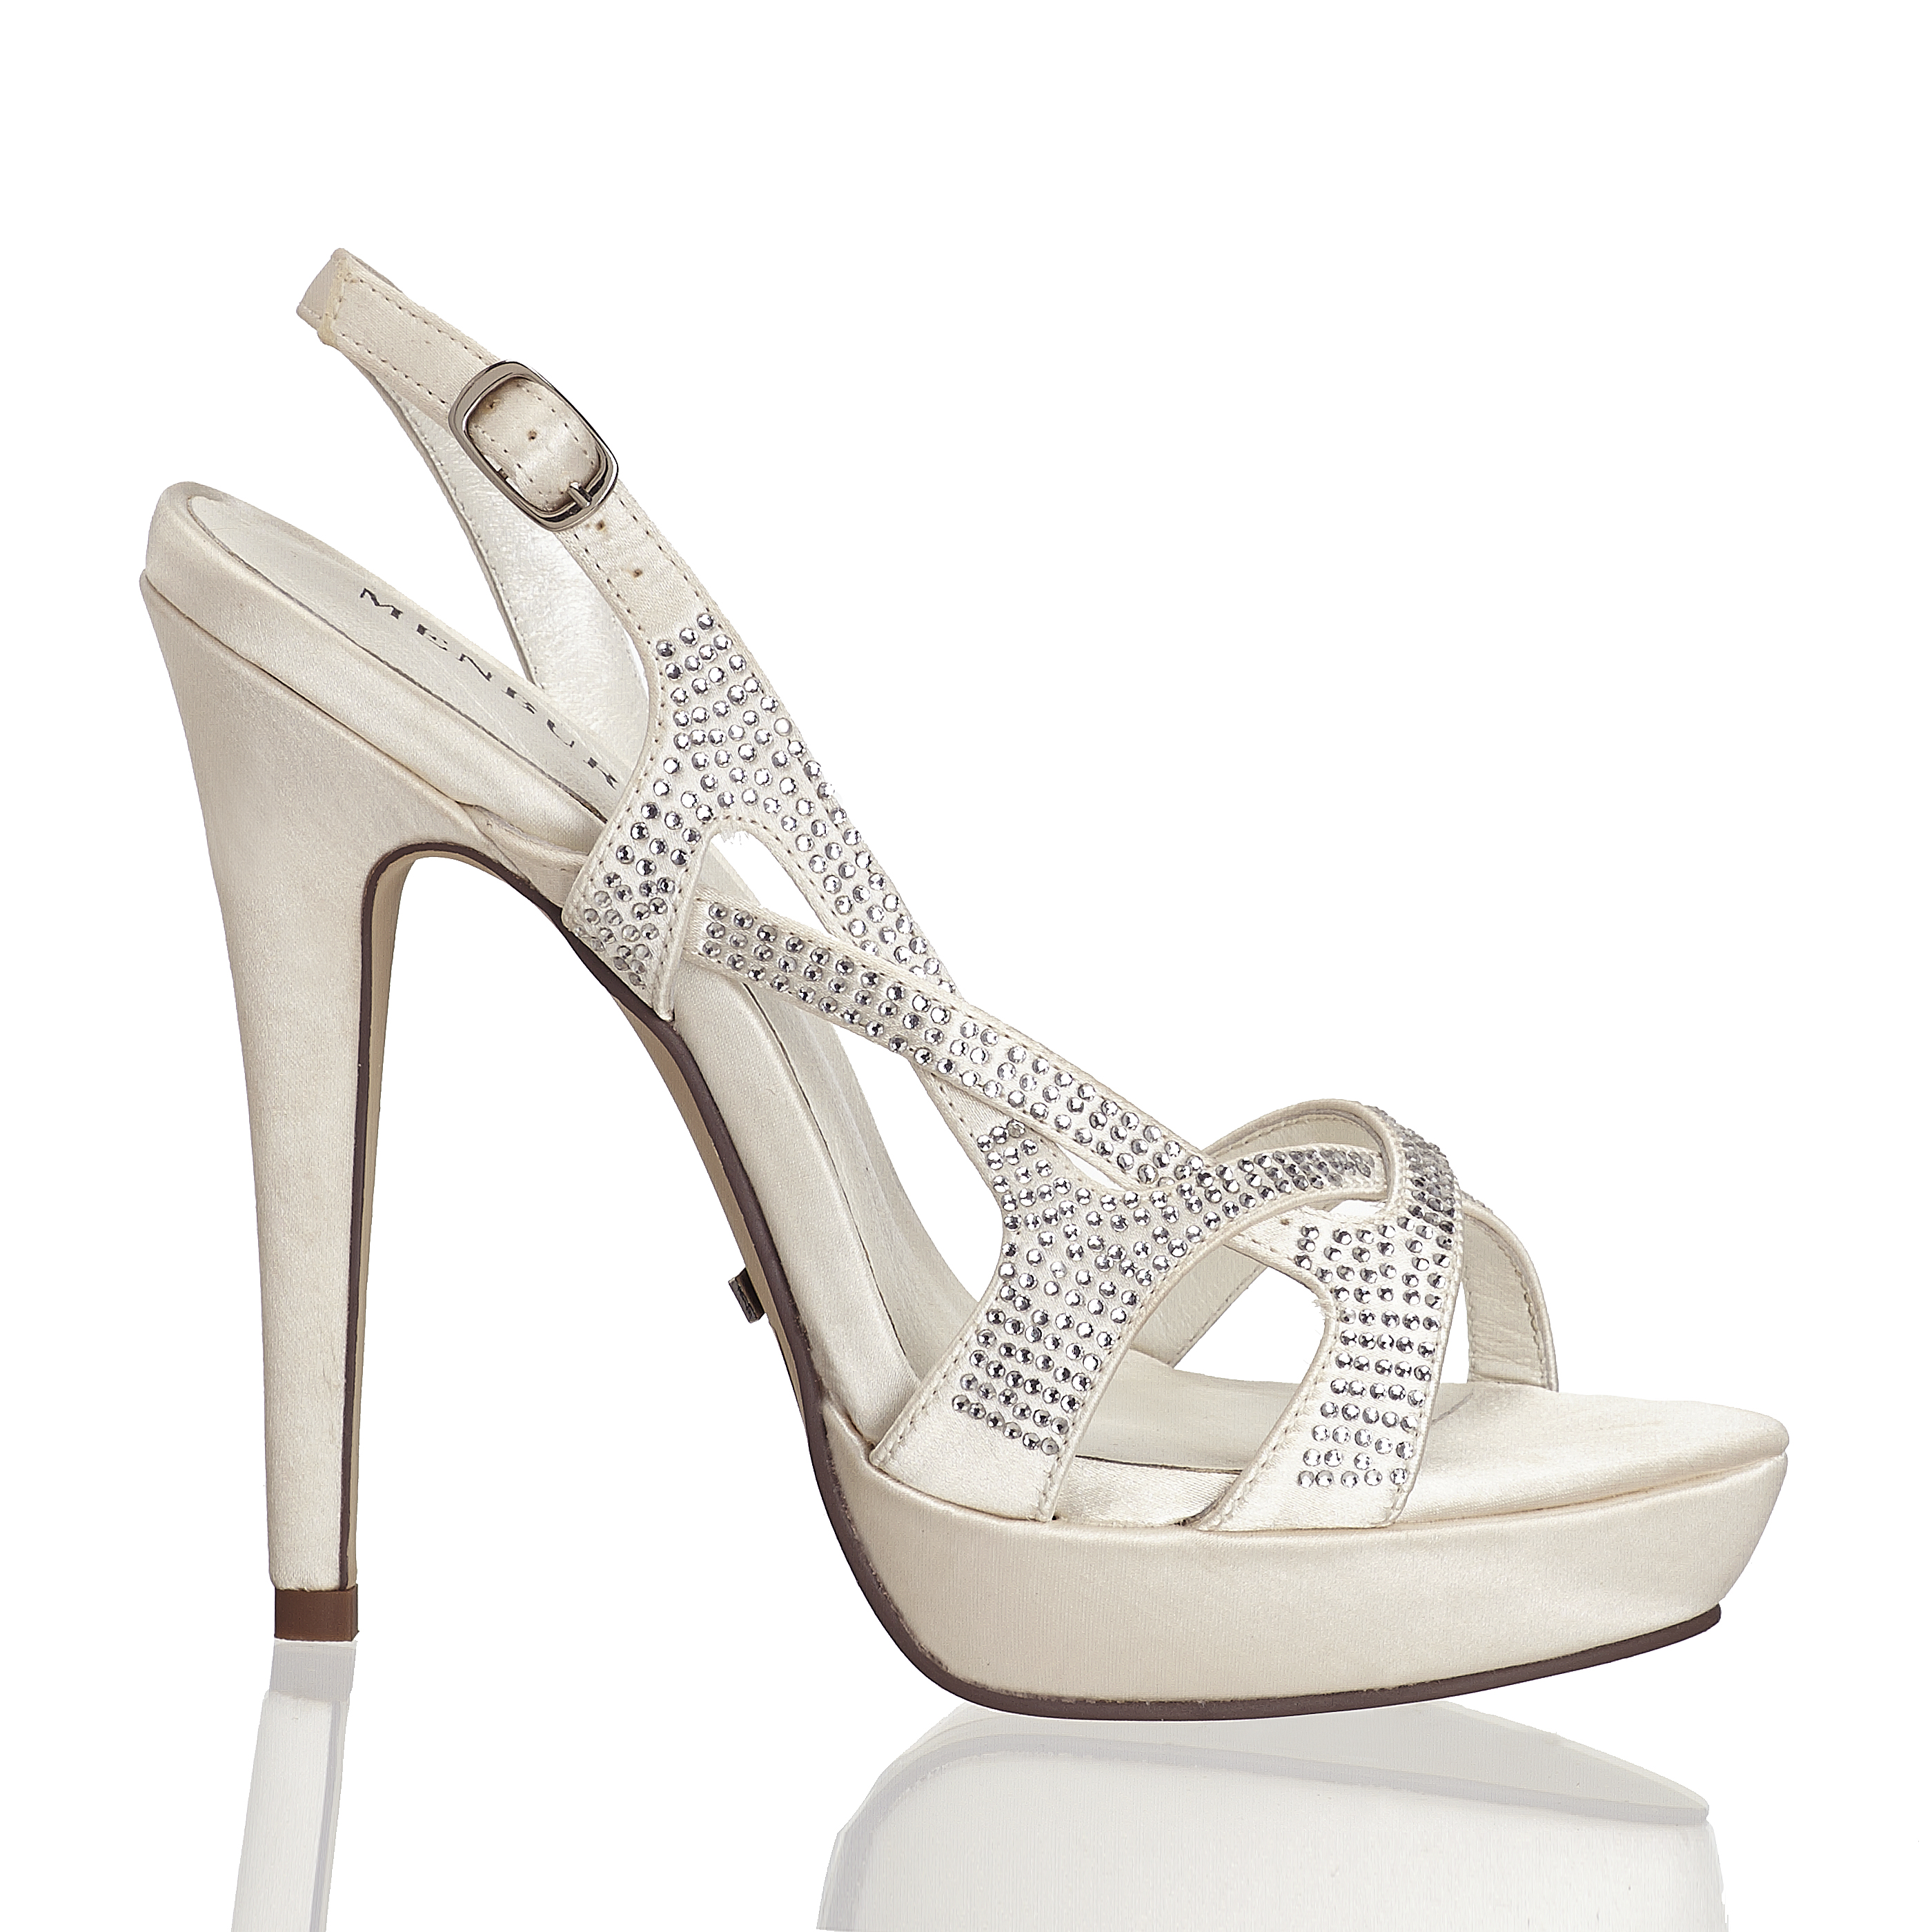 6ead1f49af4a Bridal Shoes – Matching Bridal Shoes . Menbur Shop . OFFICIAL SITE   SHOP  ONLINE